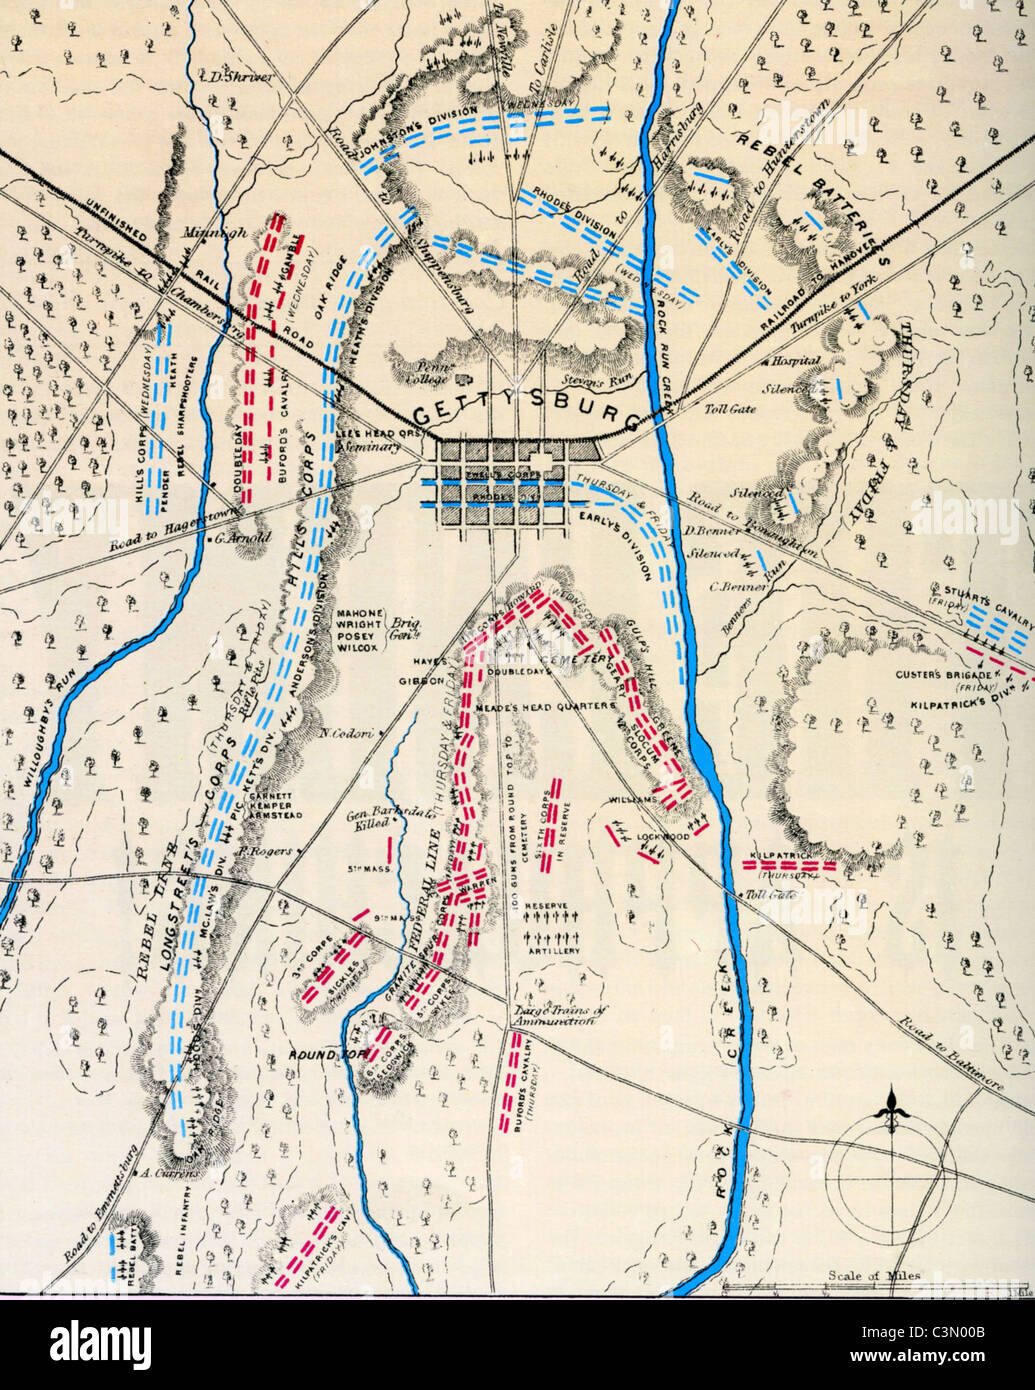 BATTLE OF GETTYSBURG  1-3 July 1863. Contemporary map showing Union forces in blue during an early phase of the - Stock Image